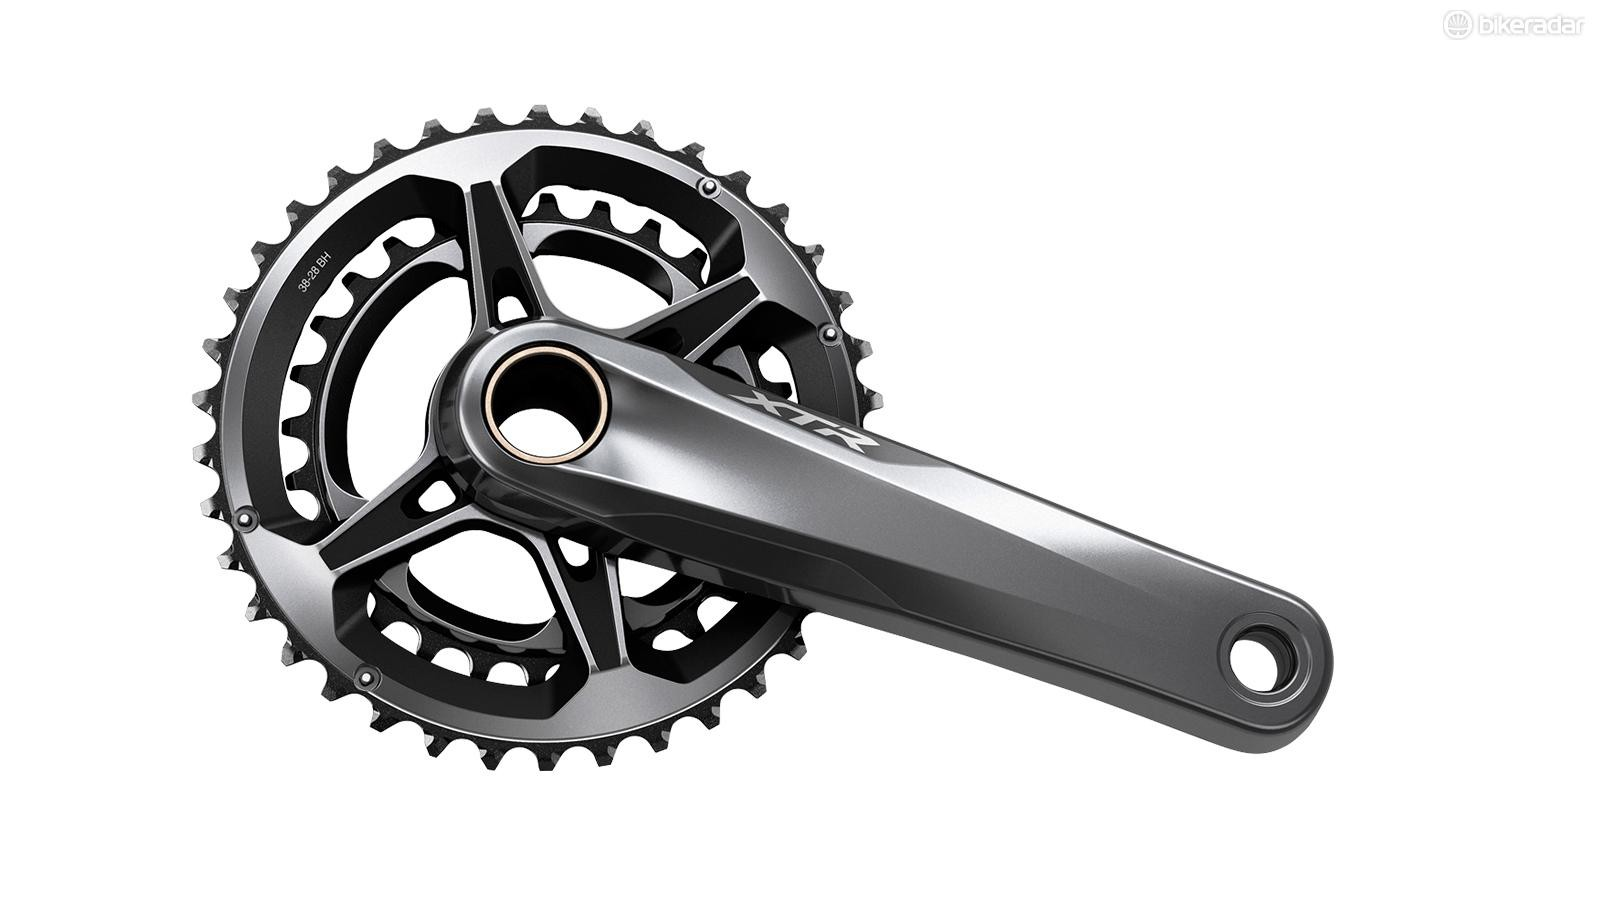 Shimano offers a single 38/28t chainring combination for 2x drivetrains